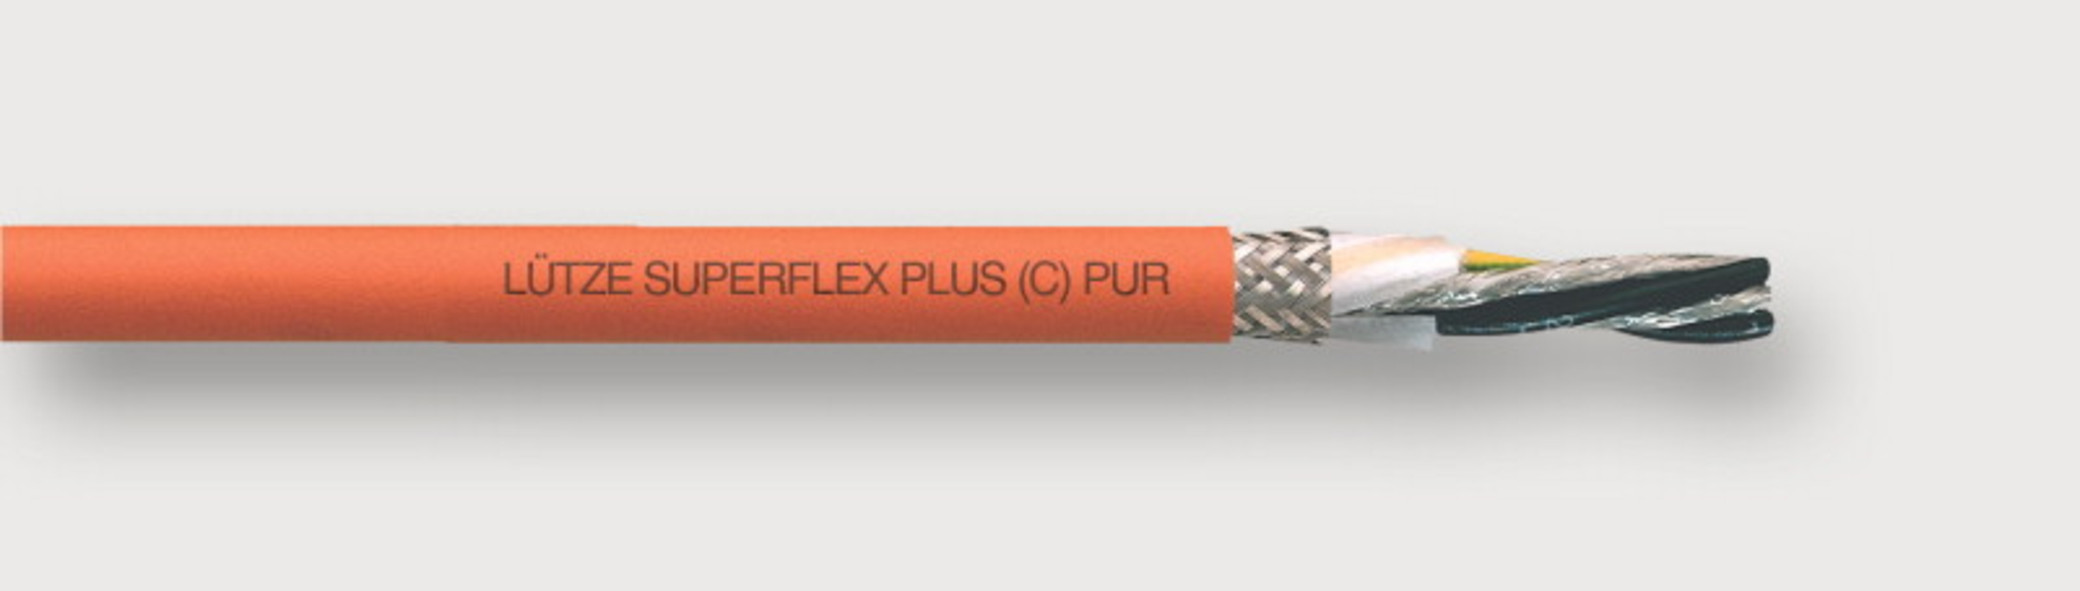 111421 - LÜTZE SUPERFLEX® PLUS M (C) PUR SERVO 0.6/1 kV High Flexing Motor Cable for Siemens and other systems For highest requirements